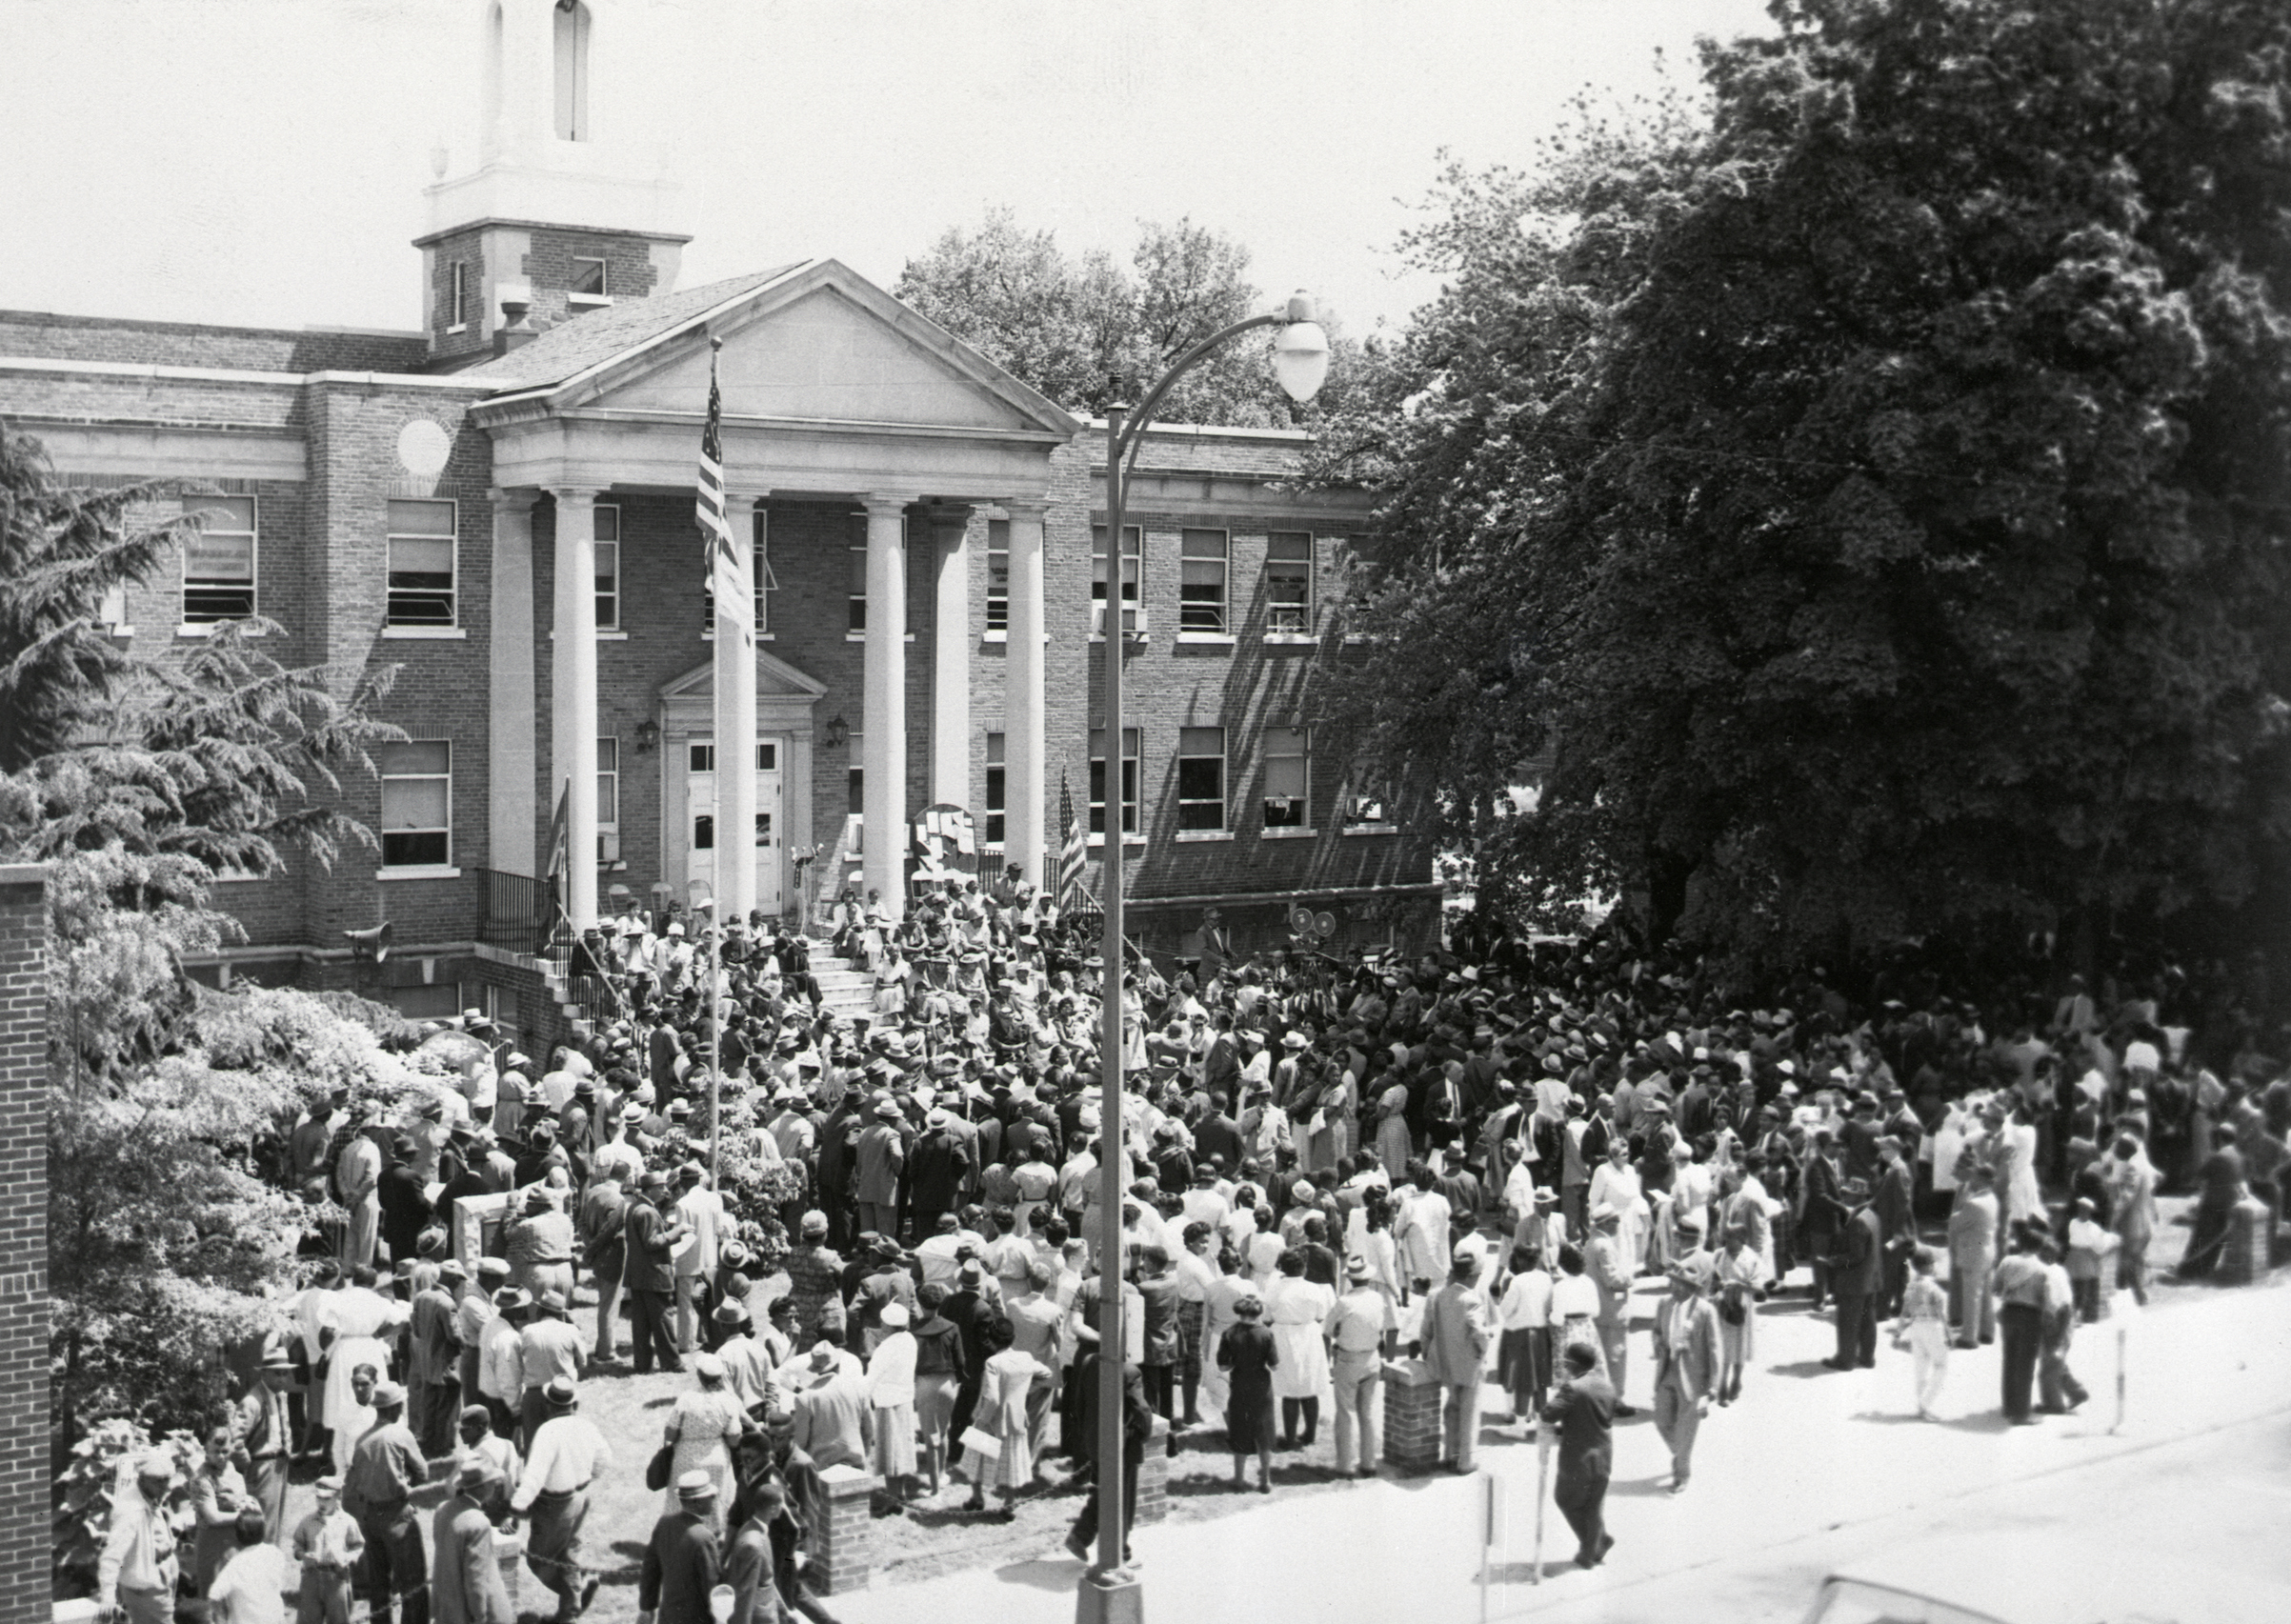 A crowd of about 1,000 attends an NAACP rally in Farmville, Va., marking the 7th anniversary of the Supreme Court's school desegregation ruling. The rally was at the courthouse of Prince Edward County, whose public schools were closed because of integration order.